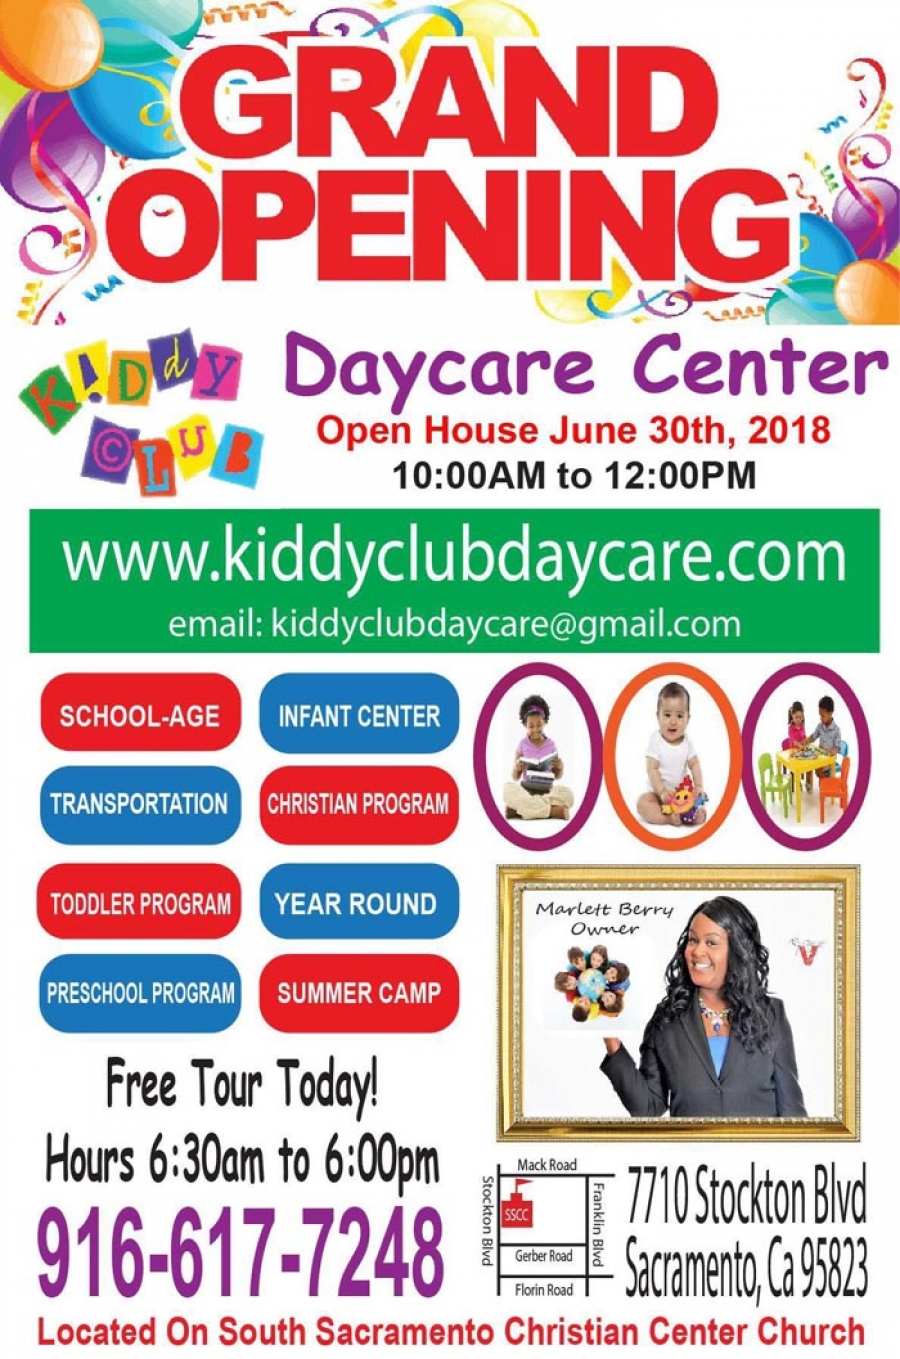 GRAND OPENING of the 2nd location of Kiddy Club Day Care at South Sacramento ChristianCenter Church